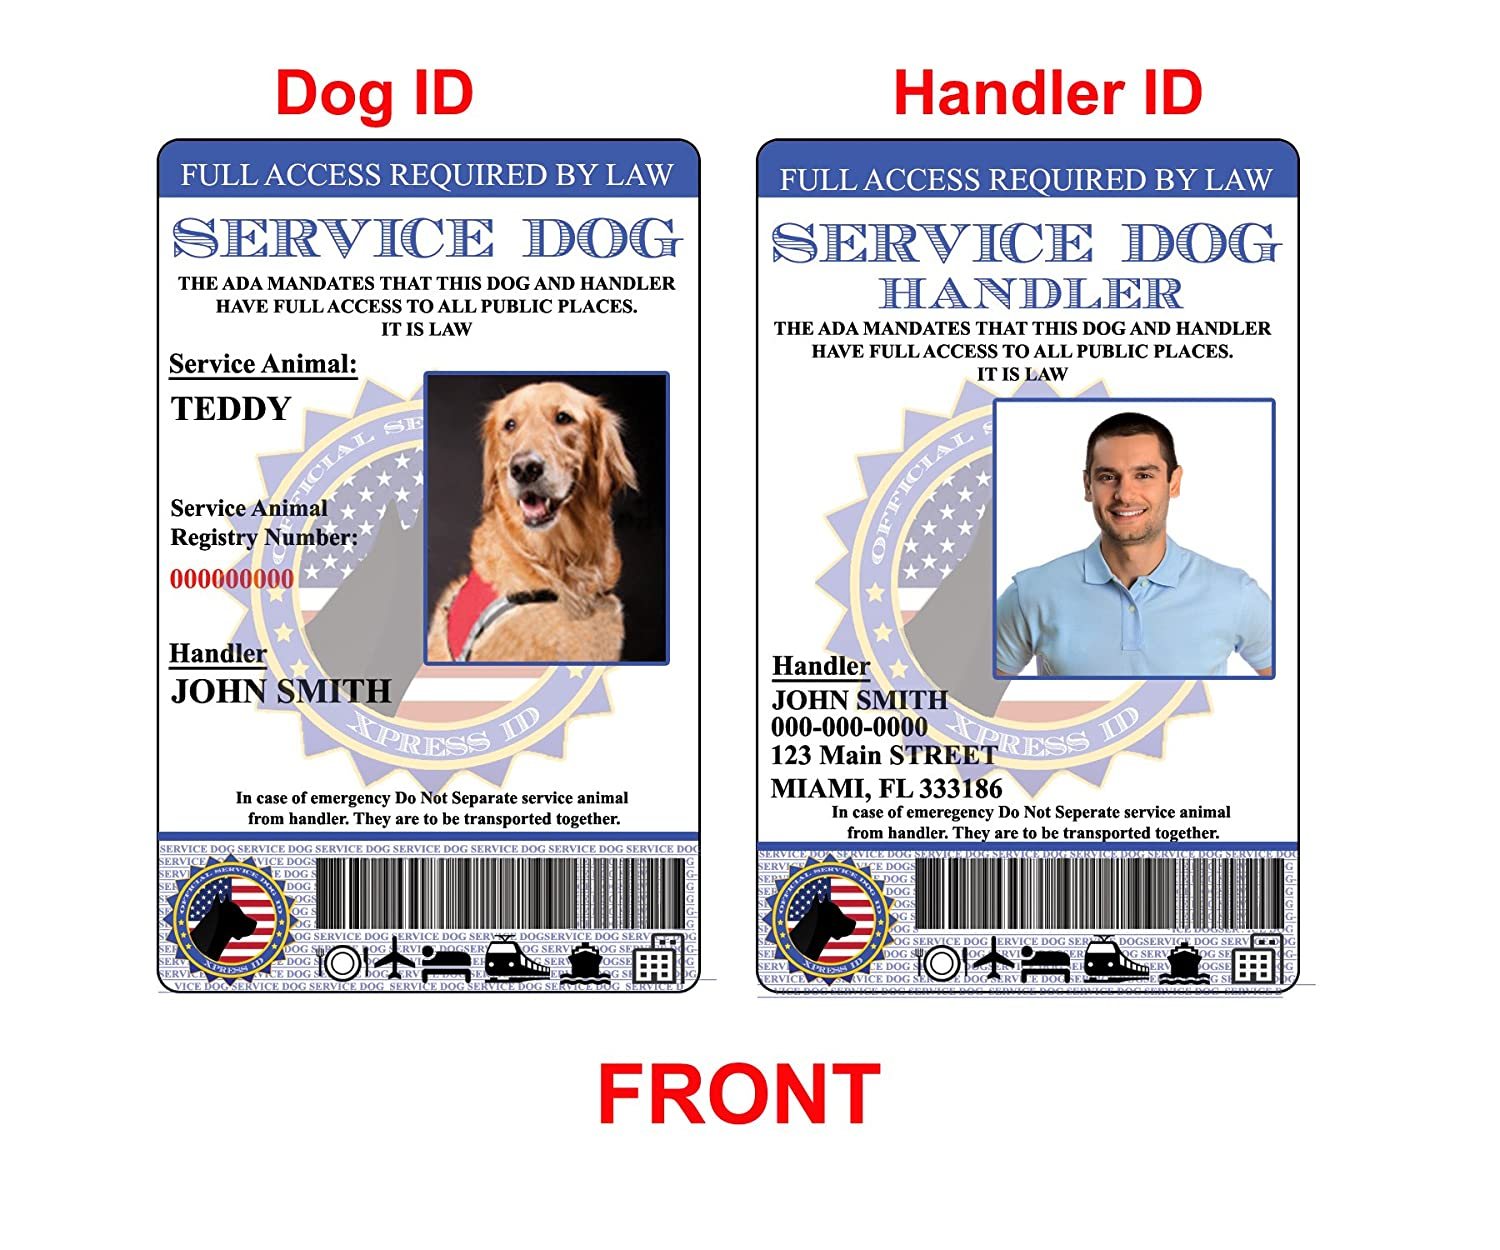 Amazon.com : XpressID Holographic Service Dog ID and Handler ID ...